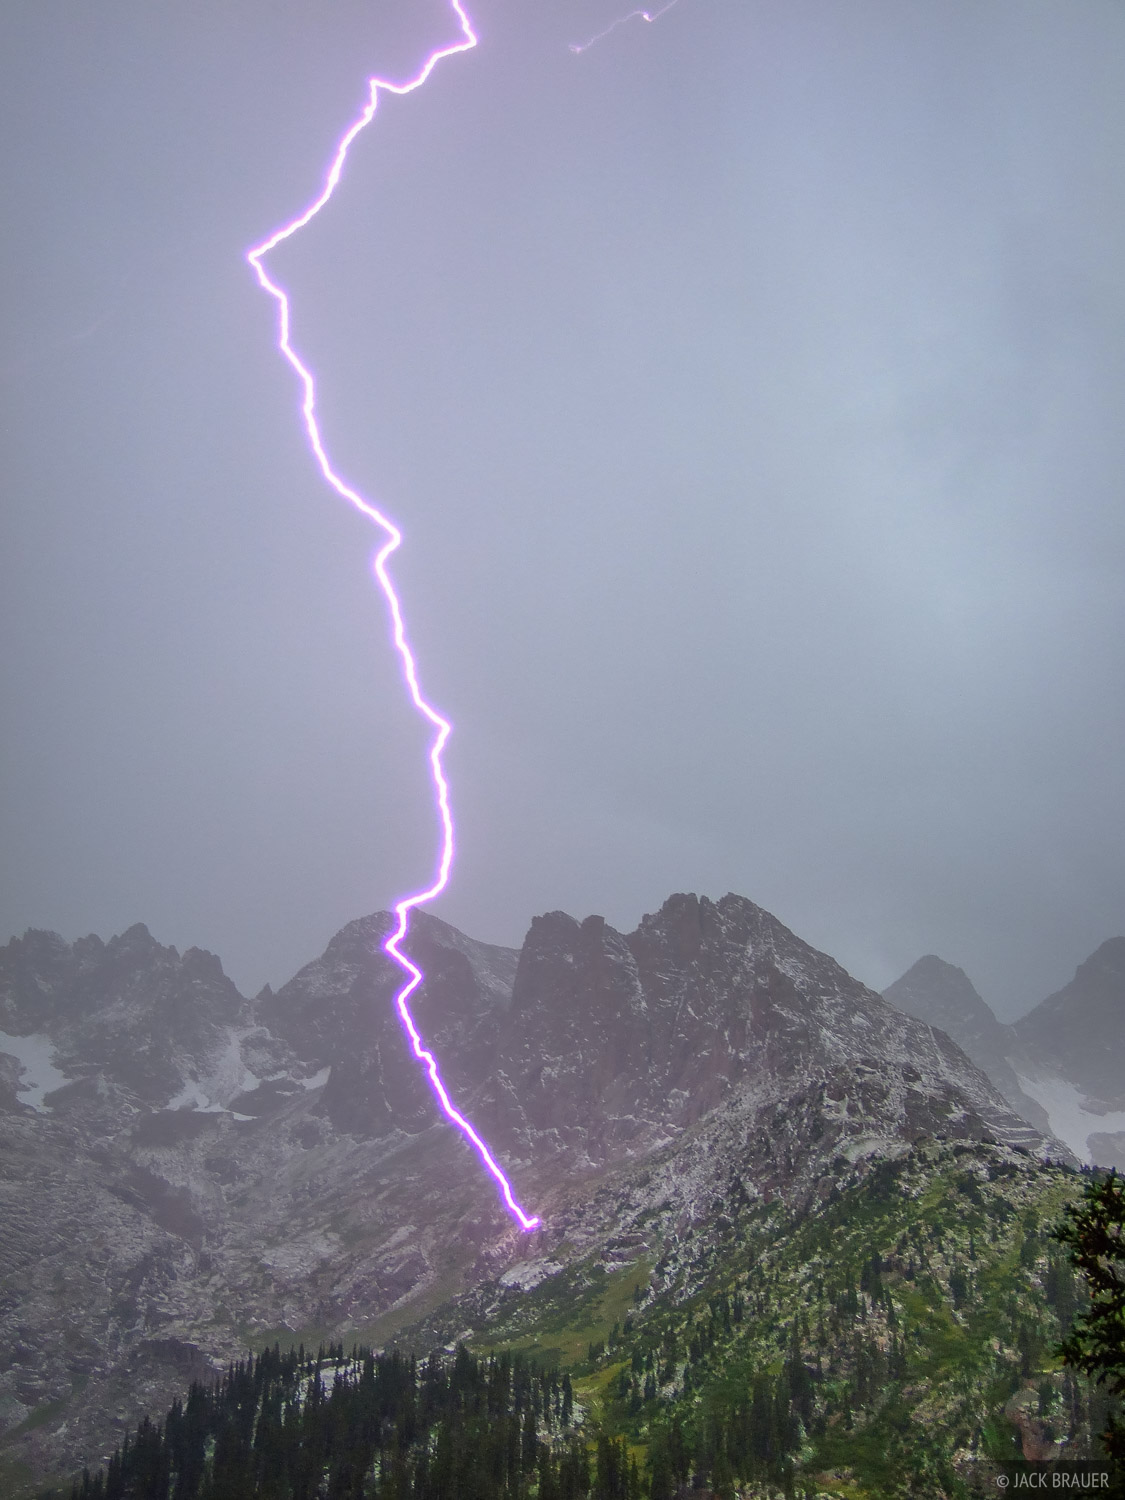 Lightning bolt, Needle Mountains, Colorado, photo